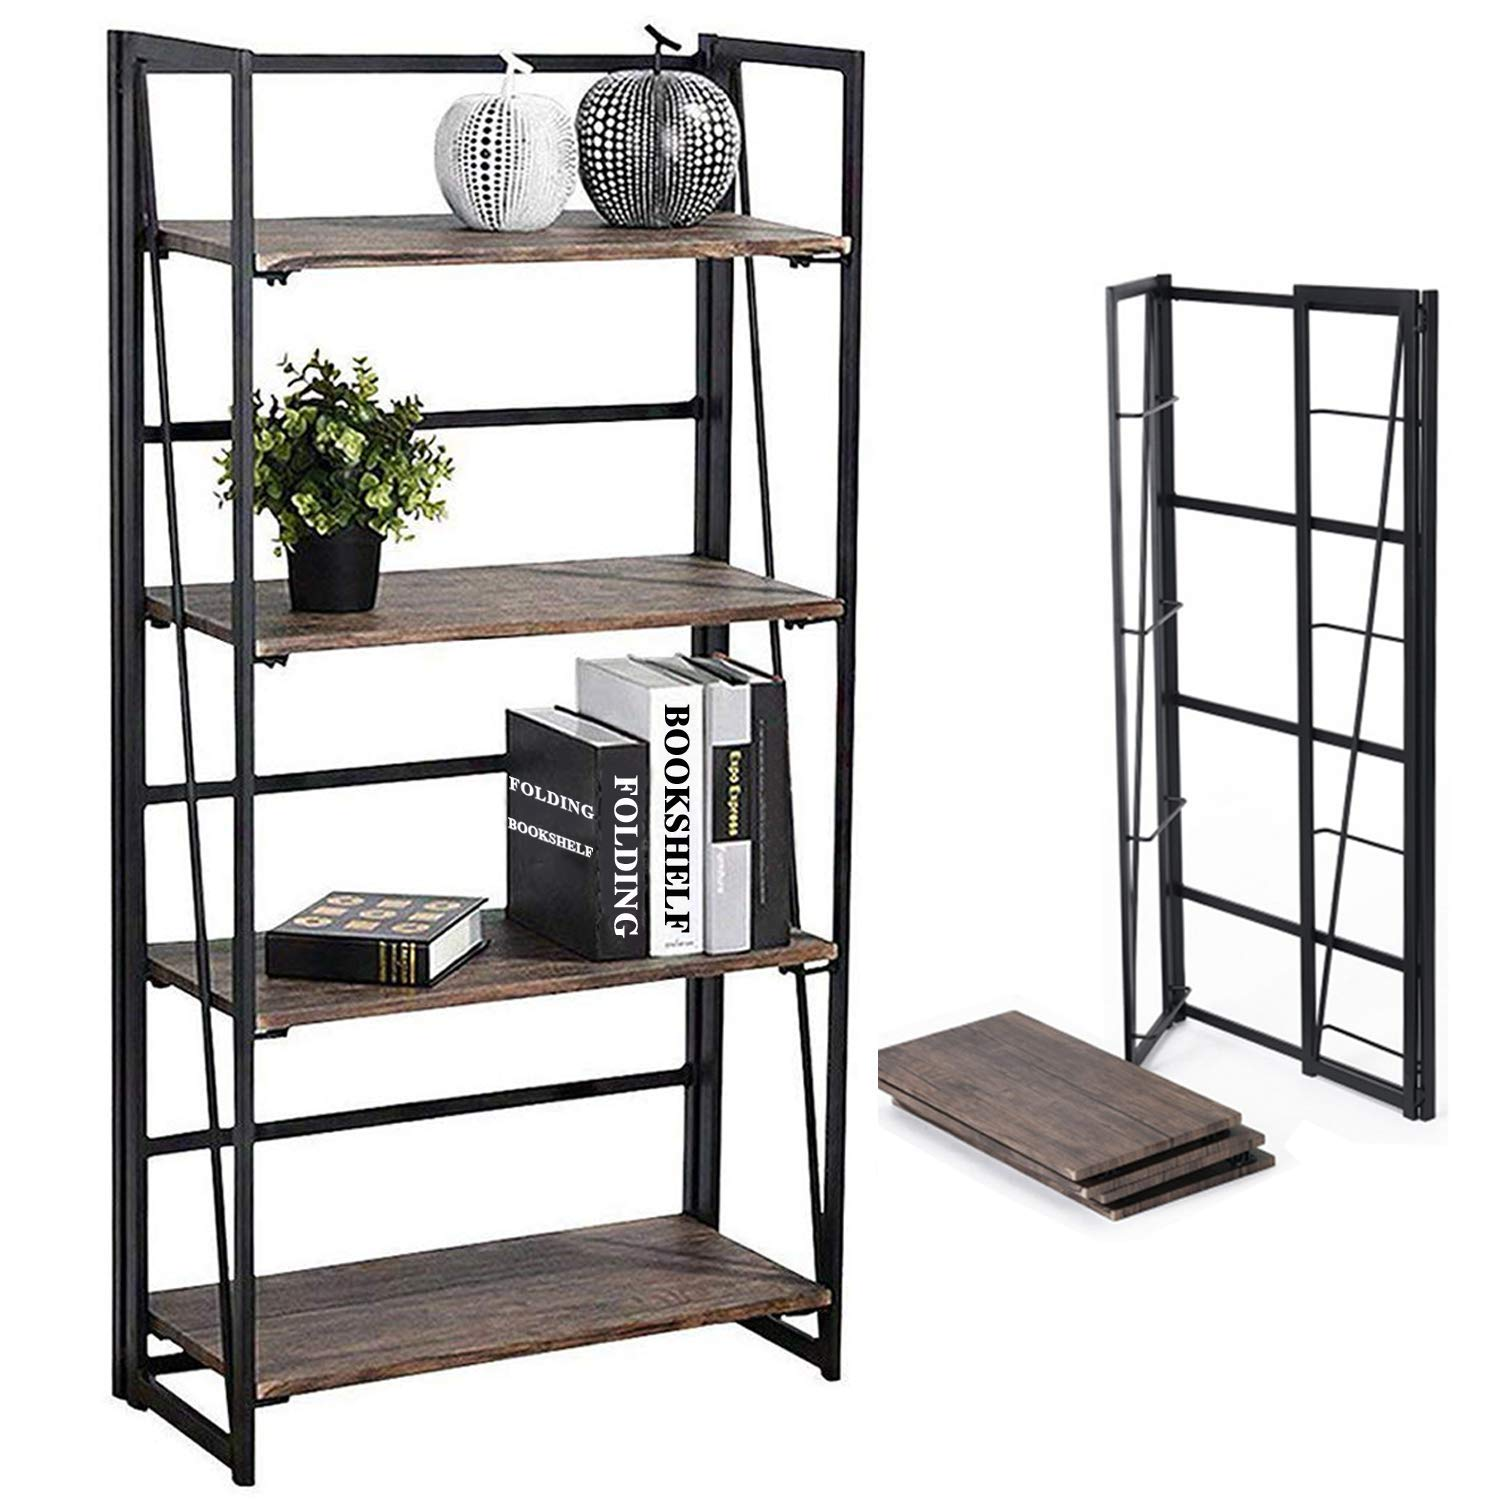 Coavas No-Assembly Folding-Bookshelf Storage Shelves 4 Tiers Bookcase Home Office Cabinet Industrial Standing Racks Study Organizer 23.6 X 11.8 X 49.4 Inches by Coavas